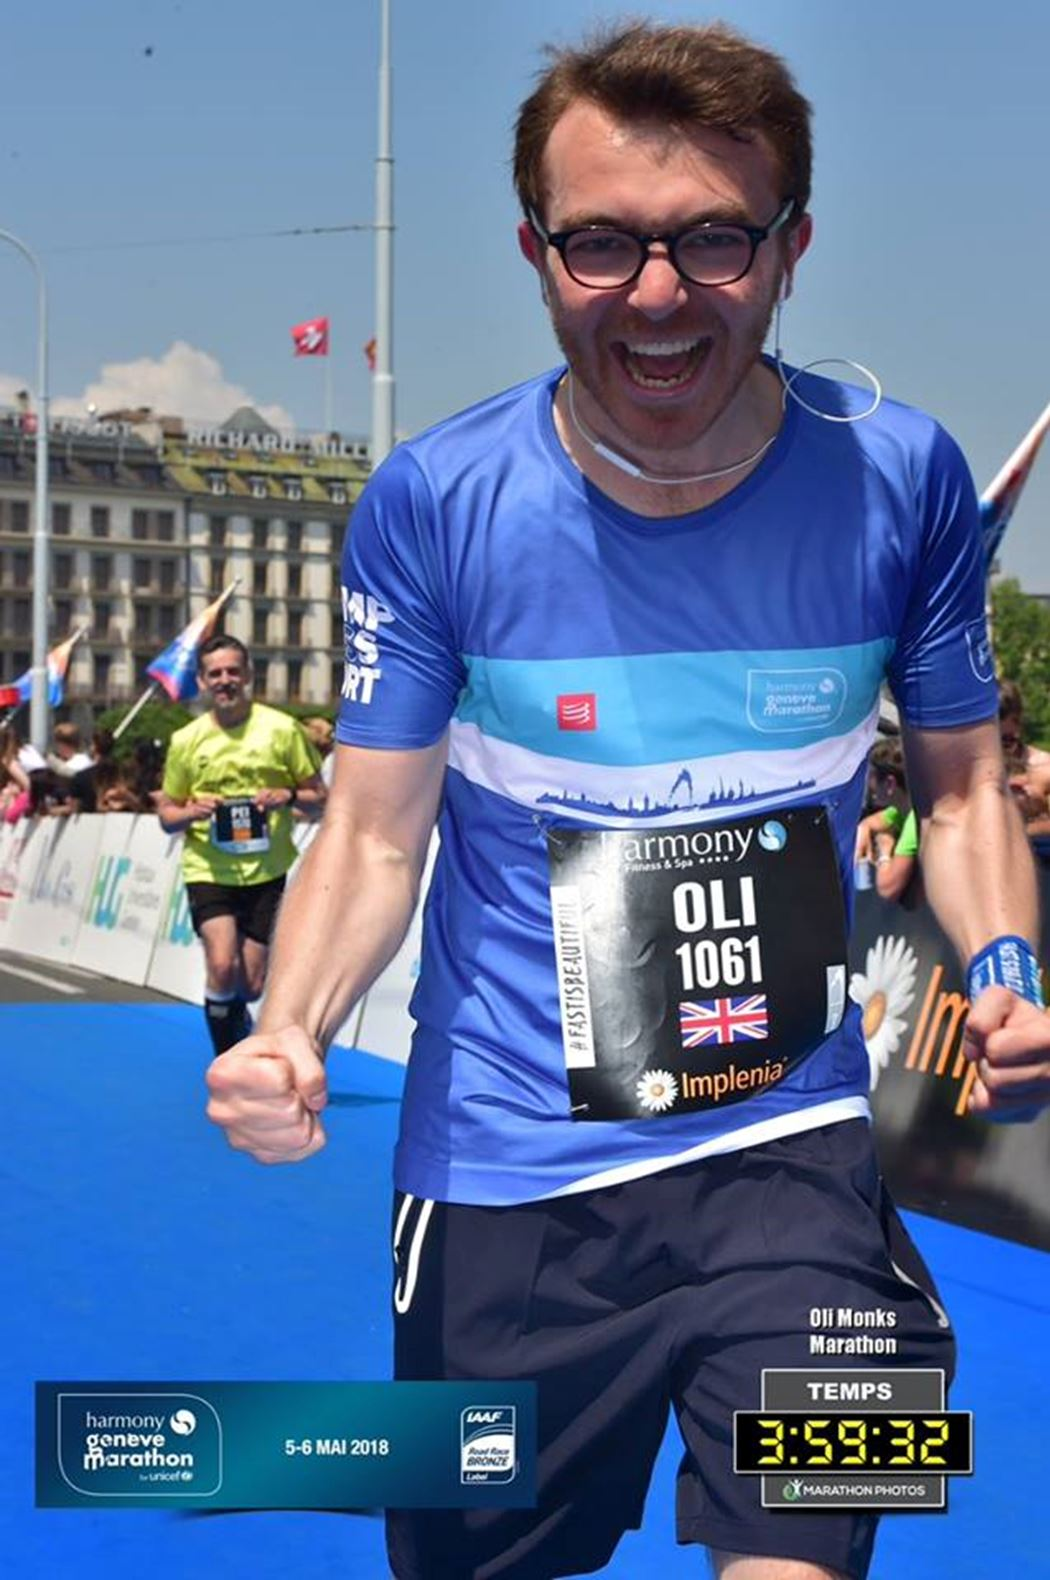 Oli finishing Geneva marathon.jpg